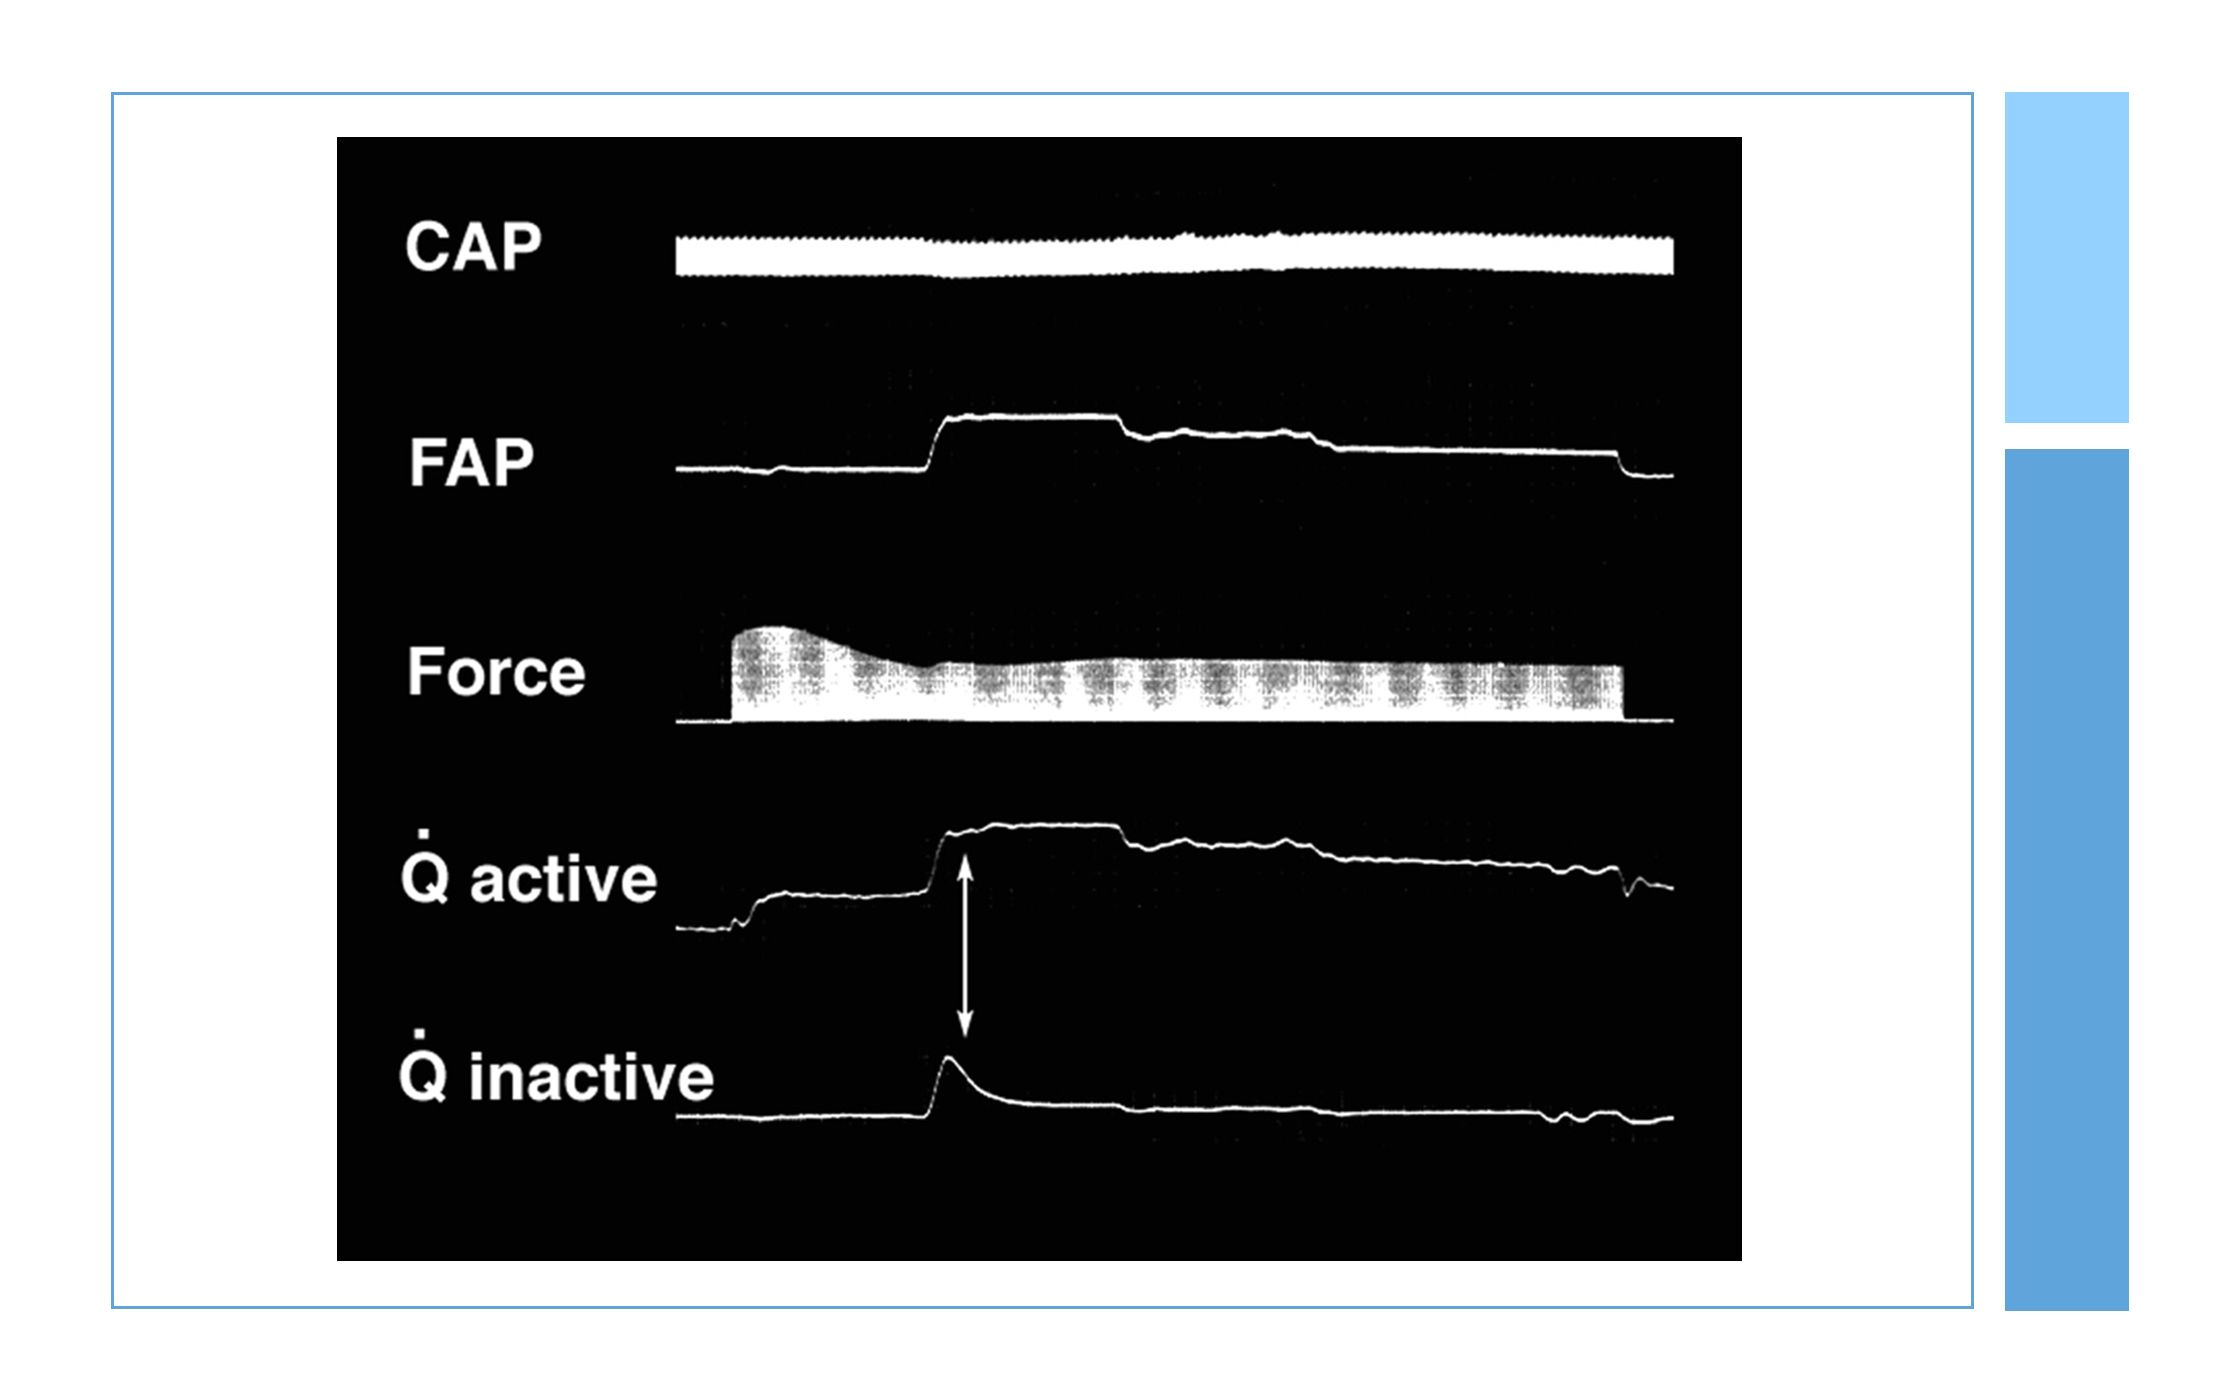 In this slide, focus on the FAP, Force, and Qactive tracings